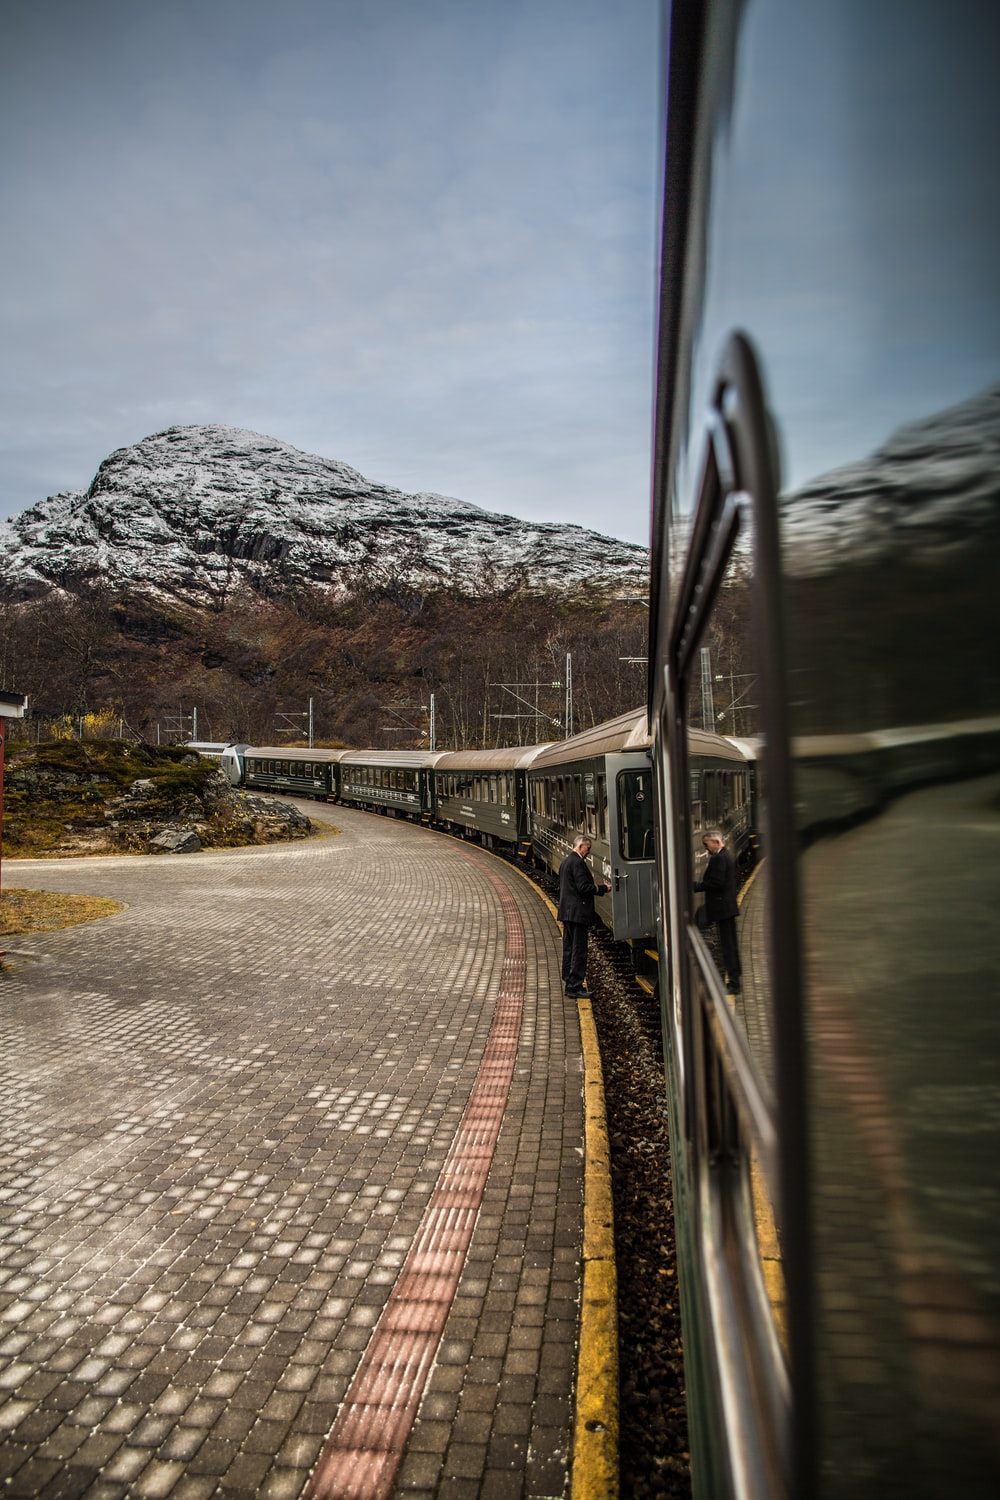 train view with mountain